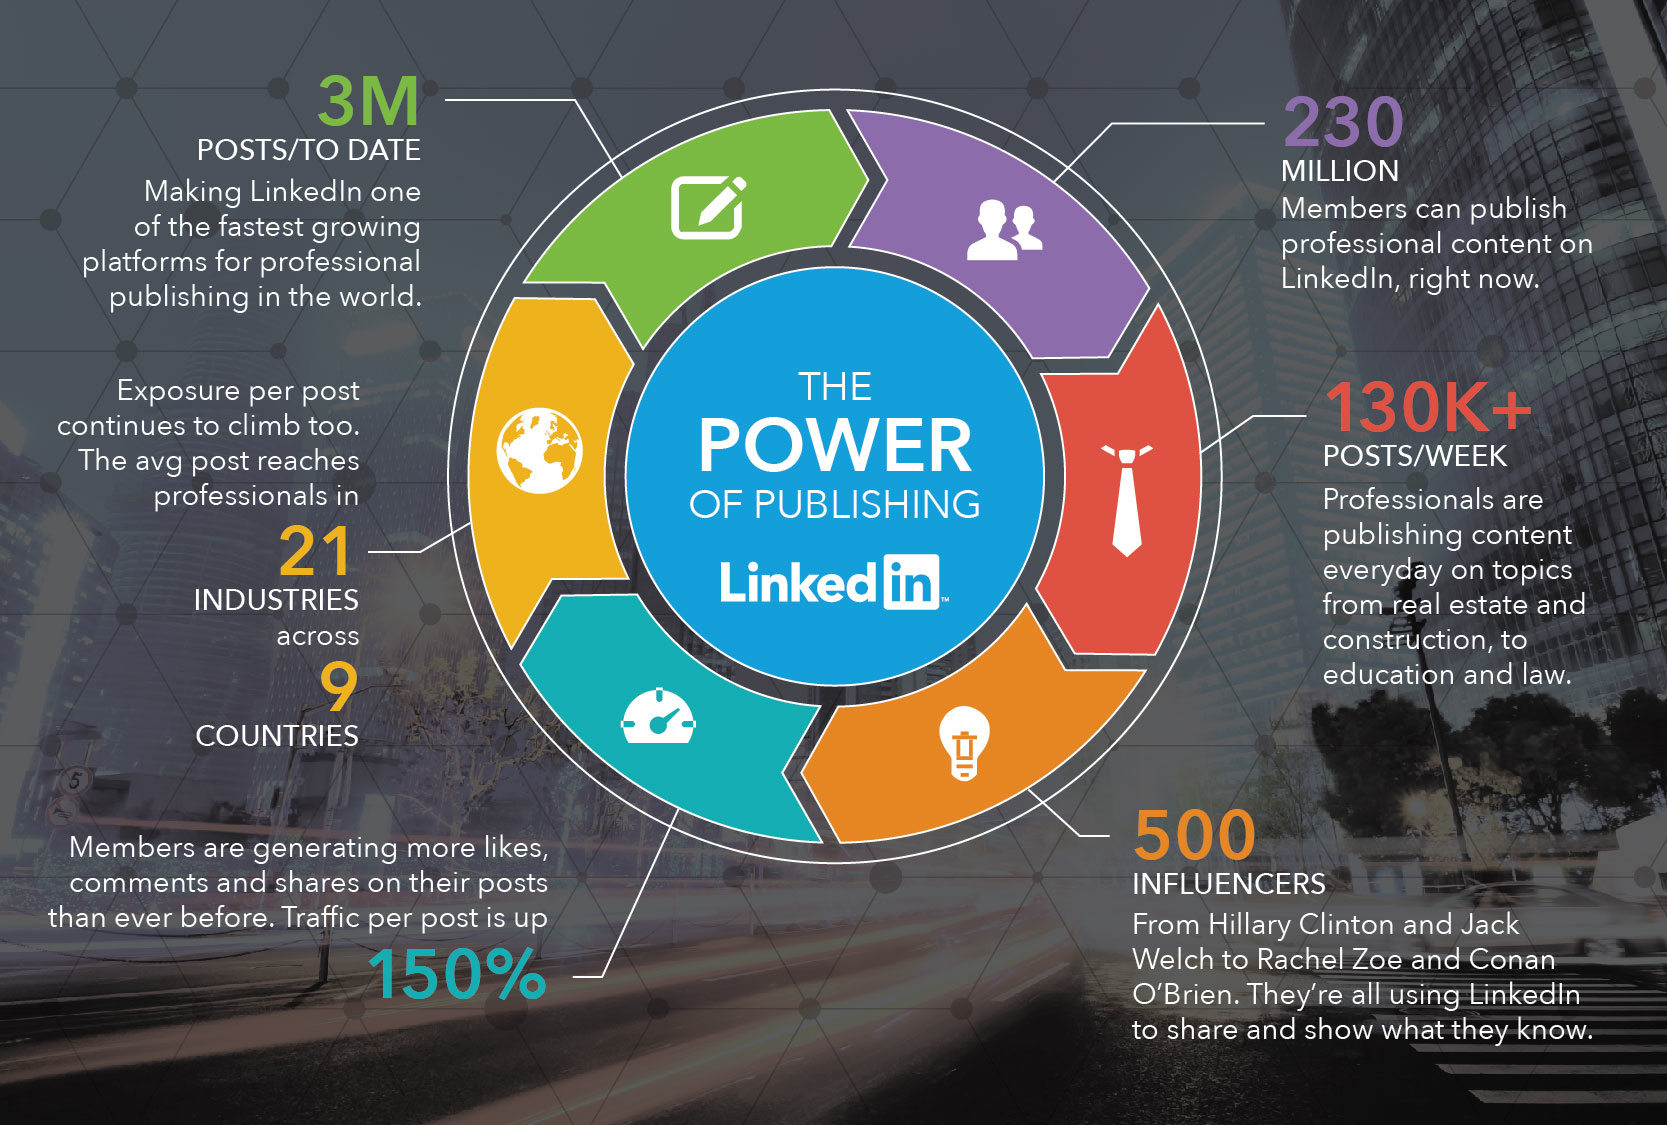 The power of publishing on linkedin infographic